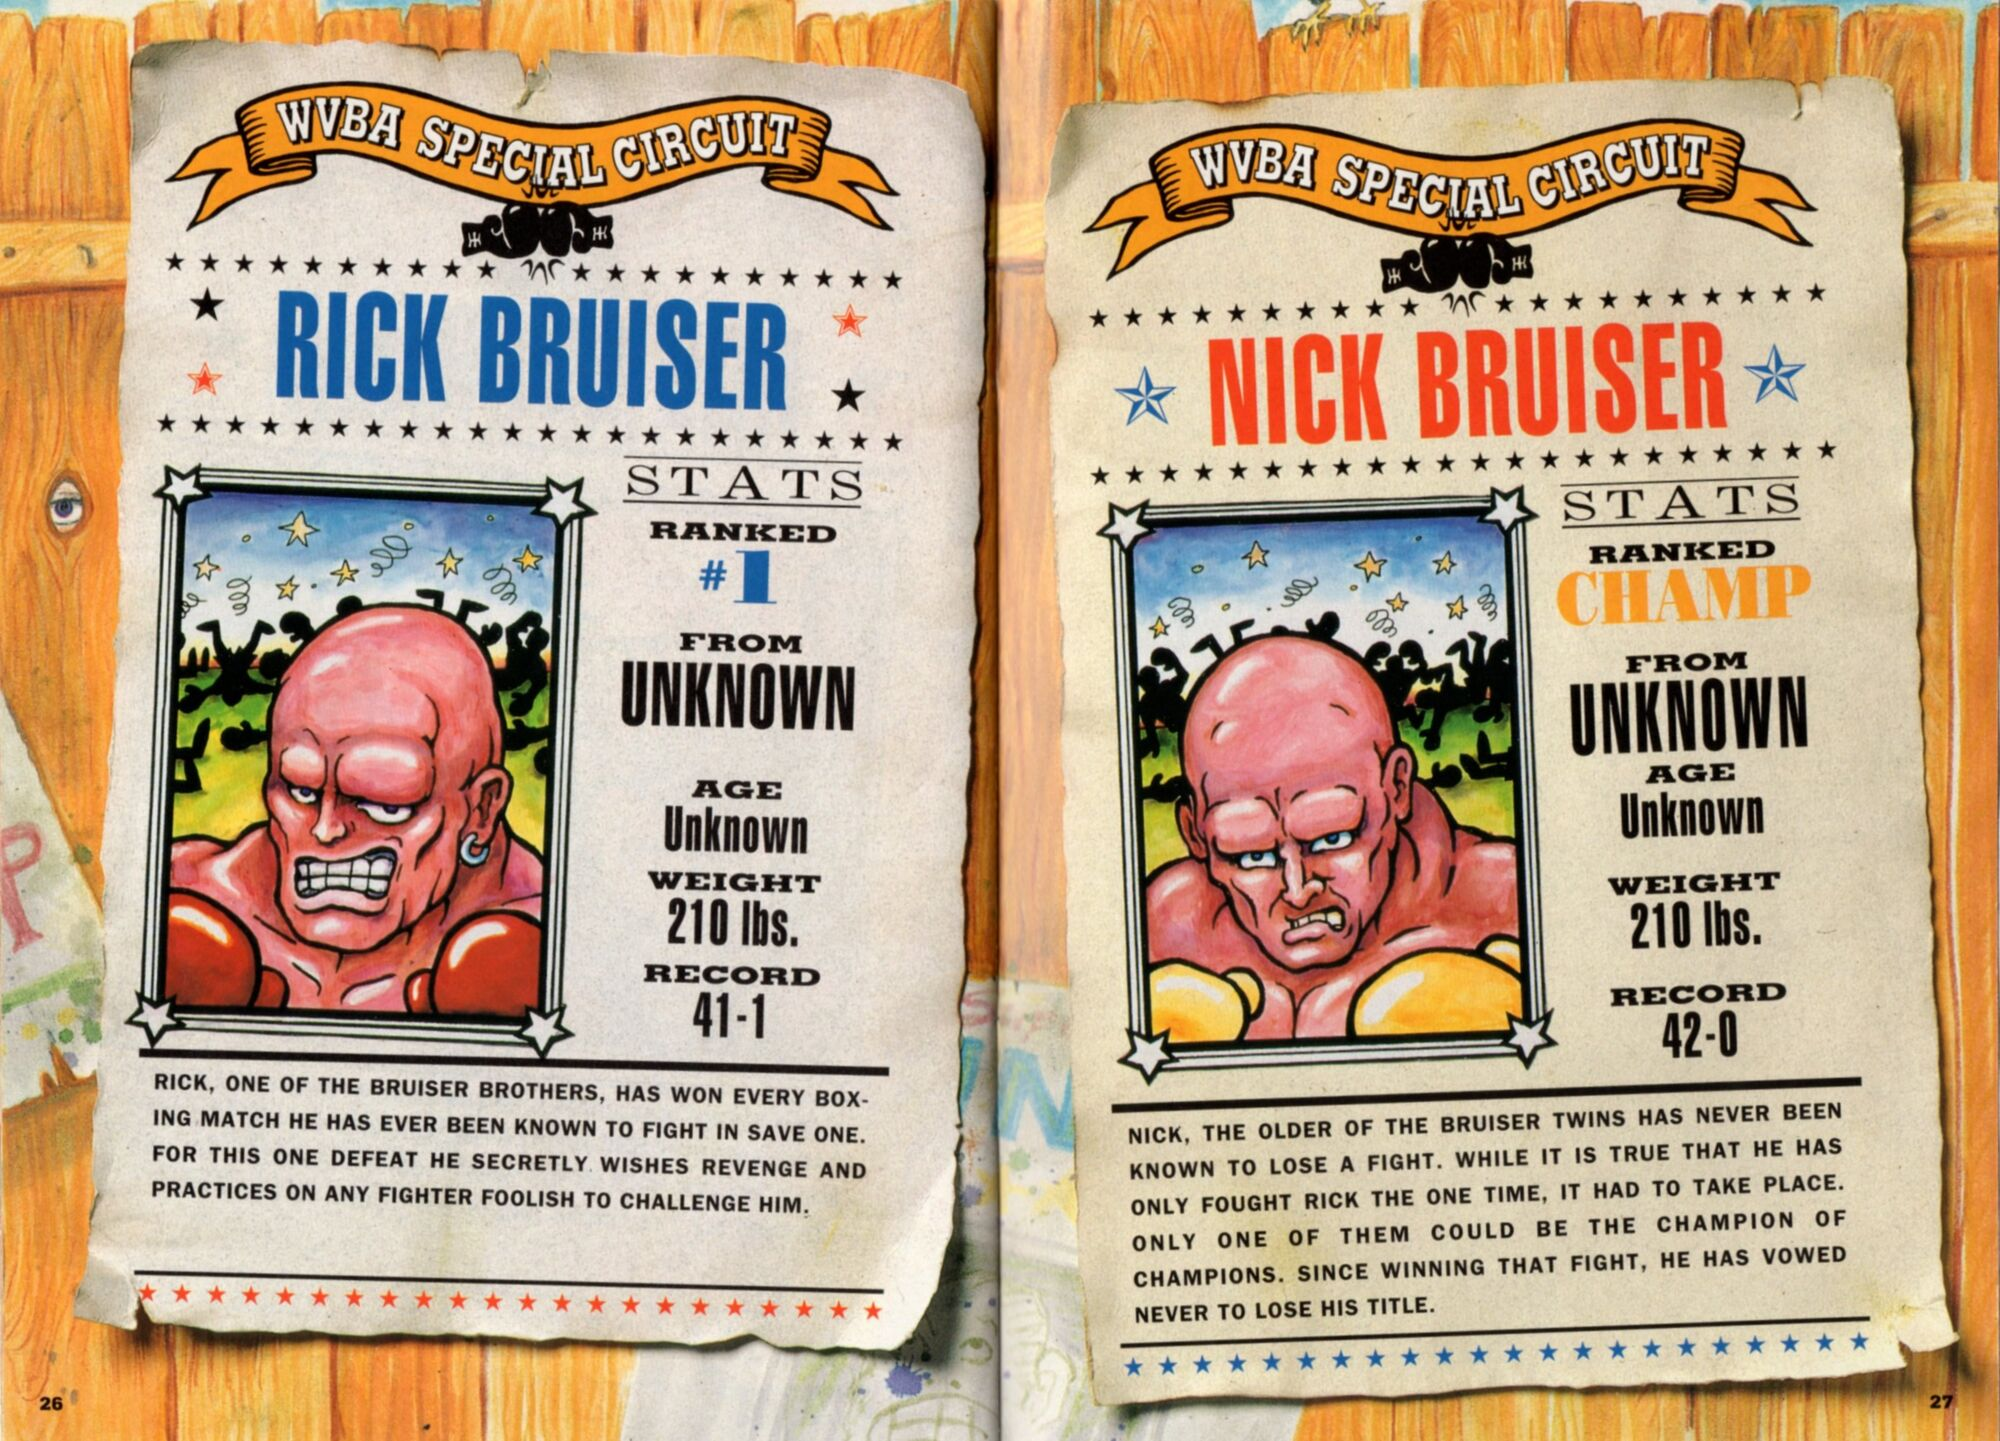 Nick bruiser punch out wiki fandom powered by wikia for What is a punch out list